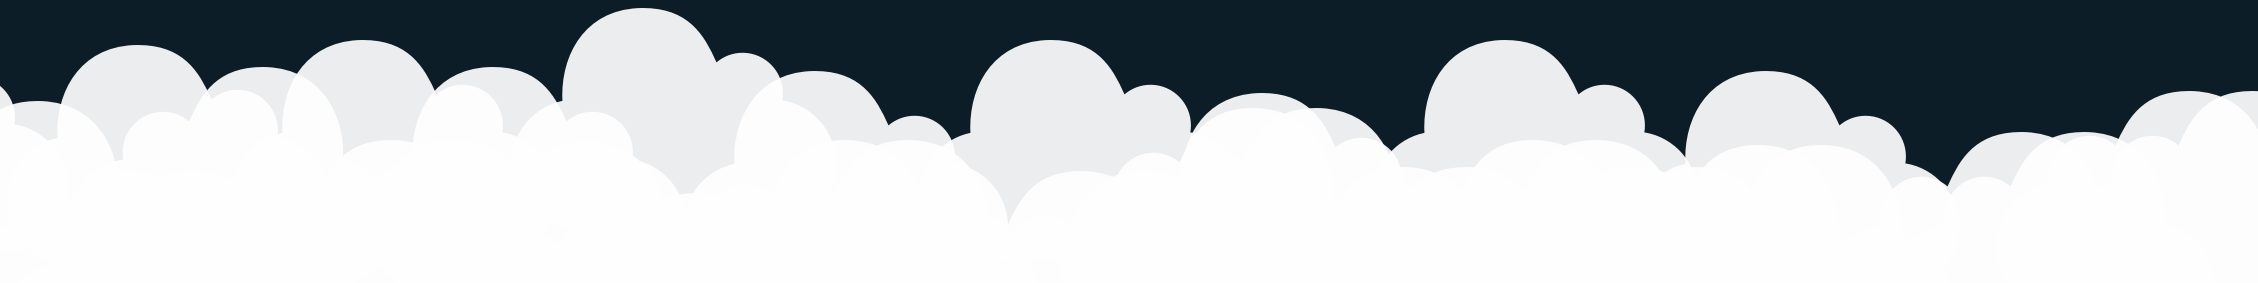 clouds_demo_request.png